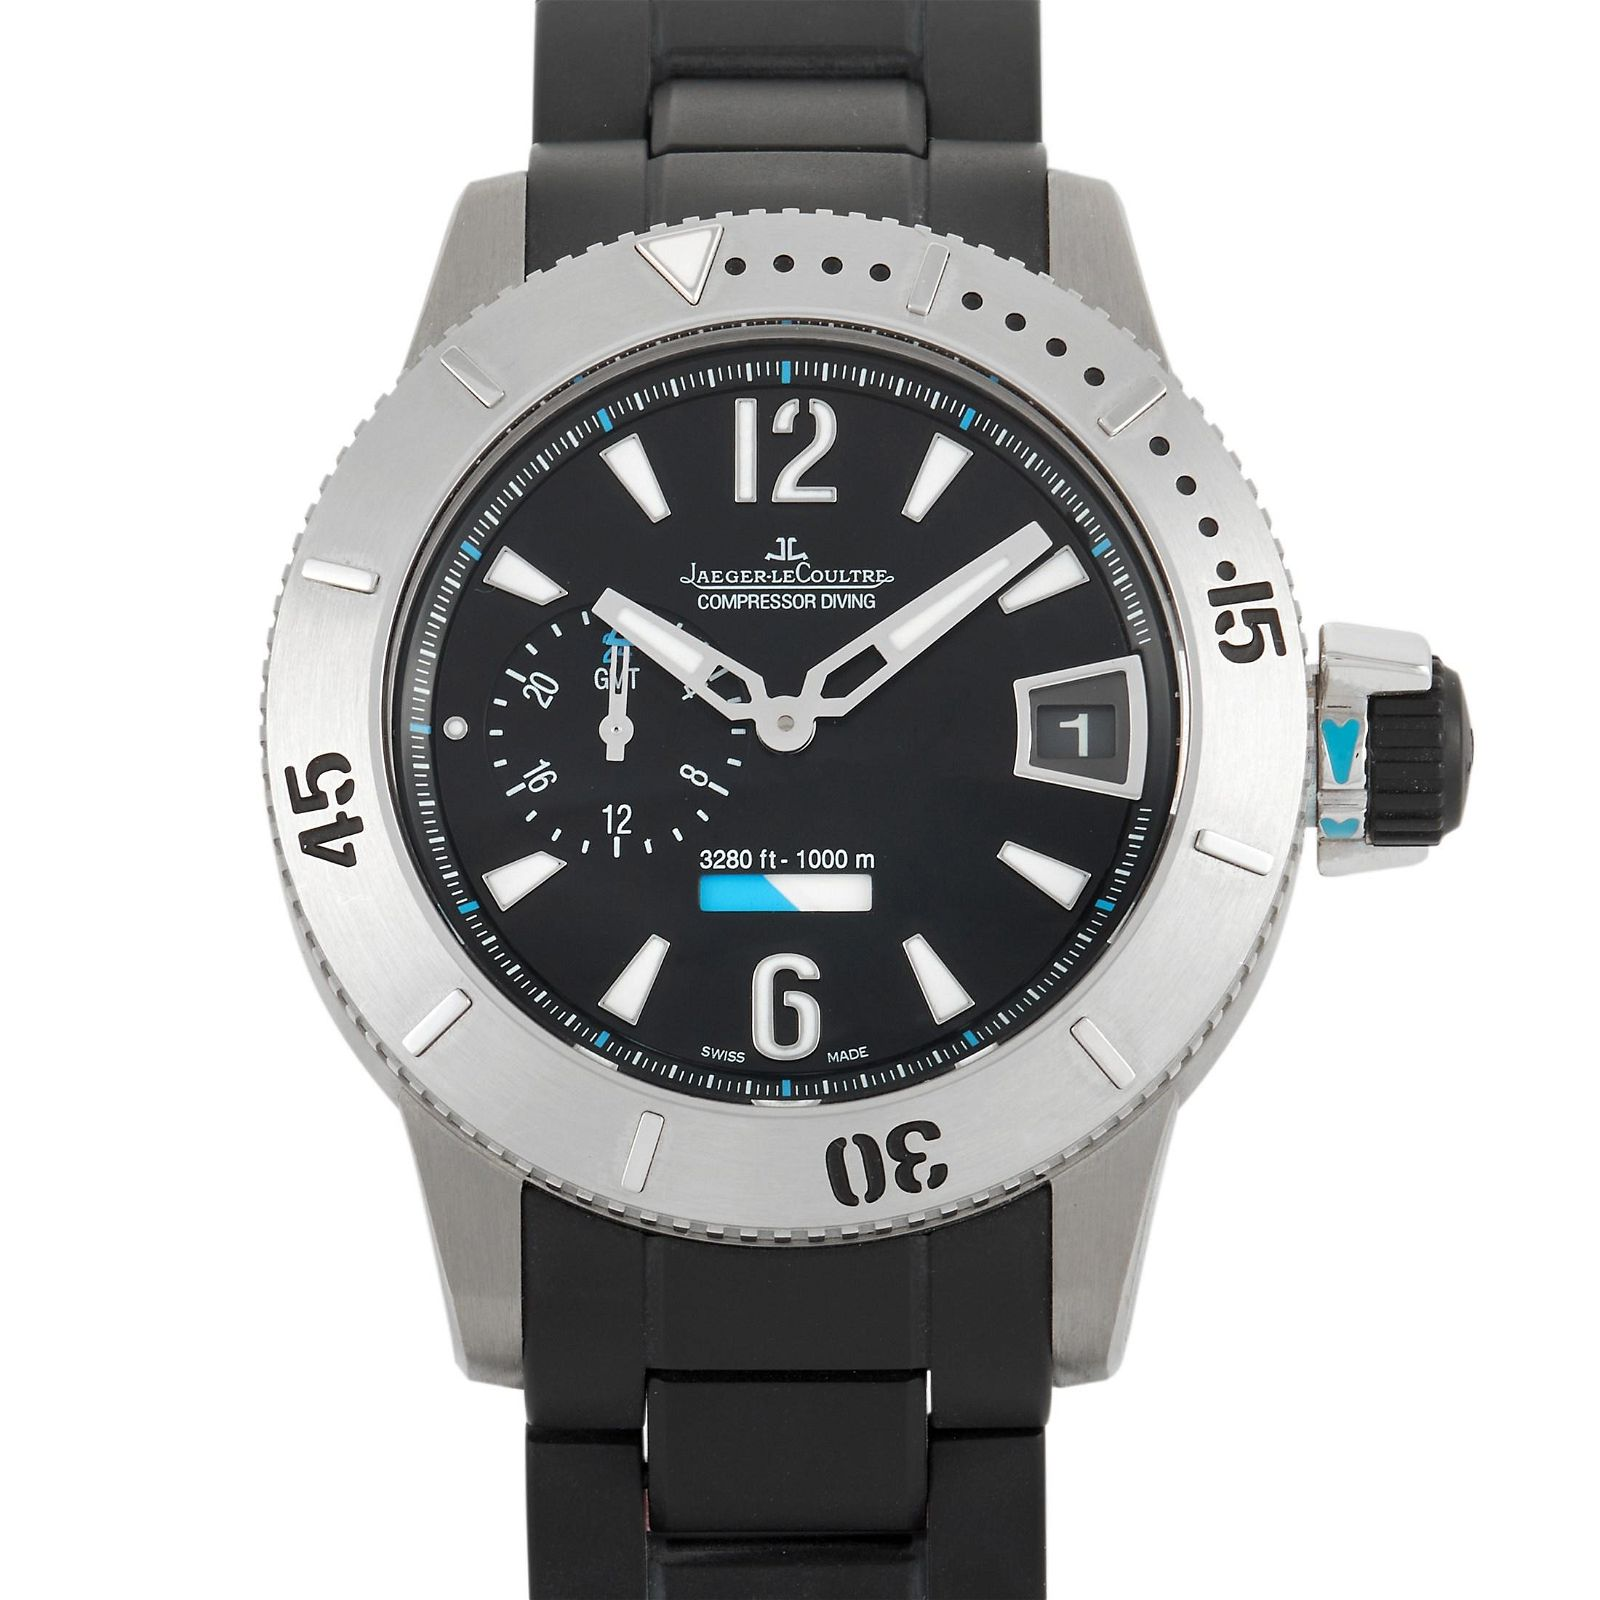 Jaeger LeCoultre Master Compressor Watch #1413/1500